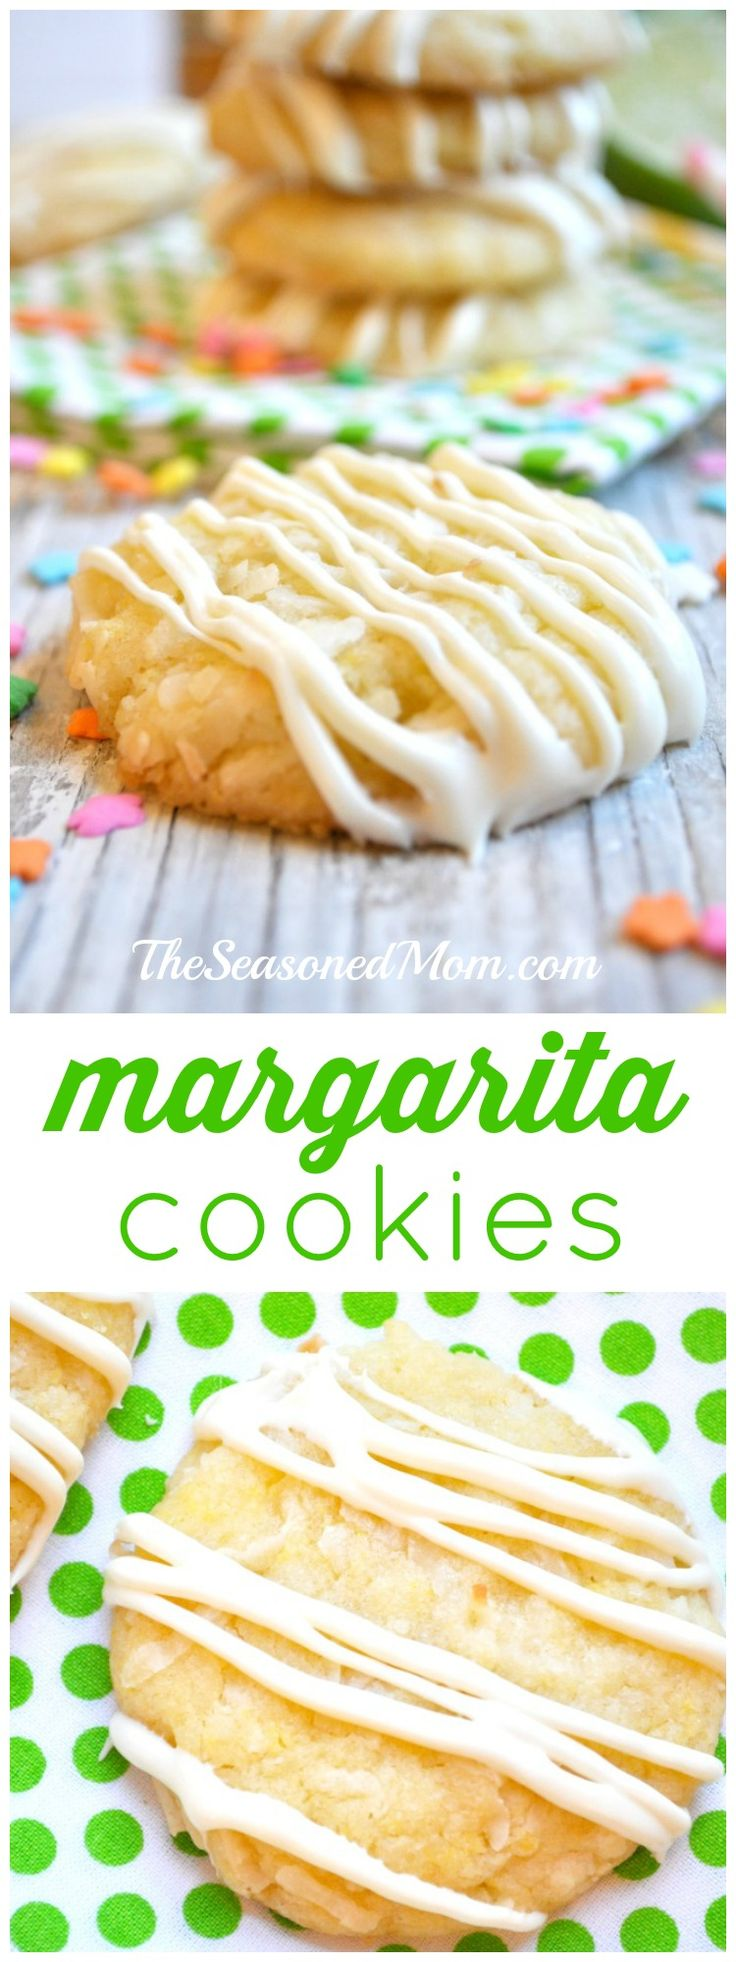 Your favorite warm-weather cocktail takes the form of a thick, chewy, coconut sugar cookie that is glazed with lime and rum-flavored icing. Perfect for Cinco de Mayo, beach picnics, and cook-outs!